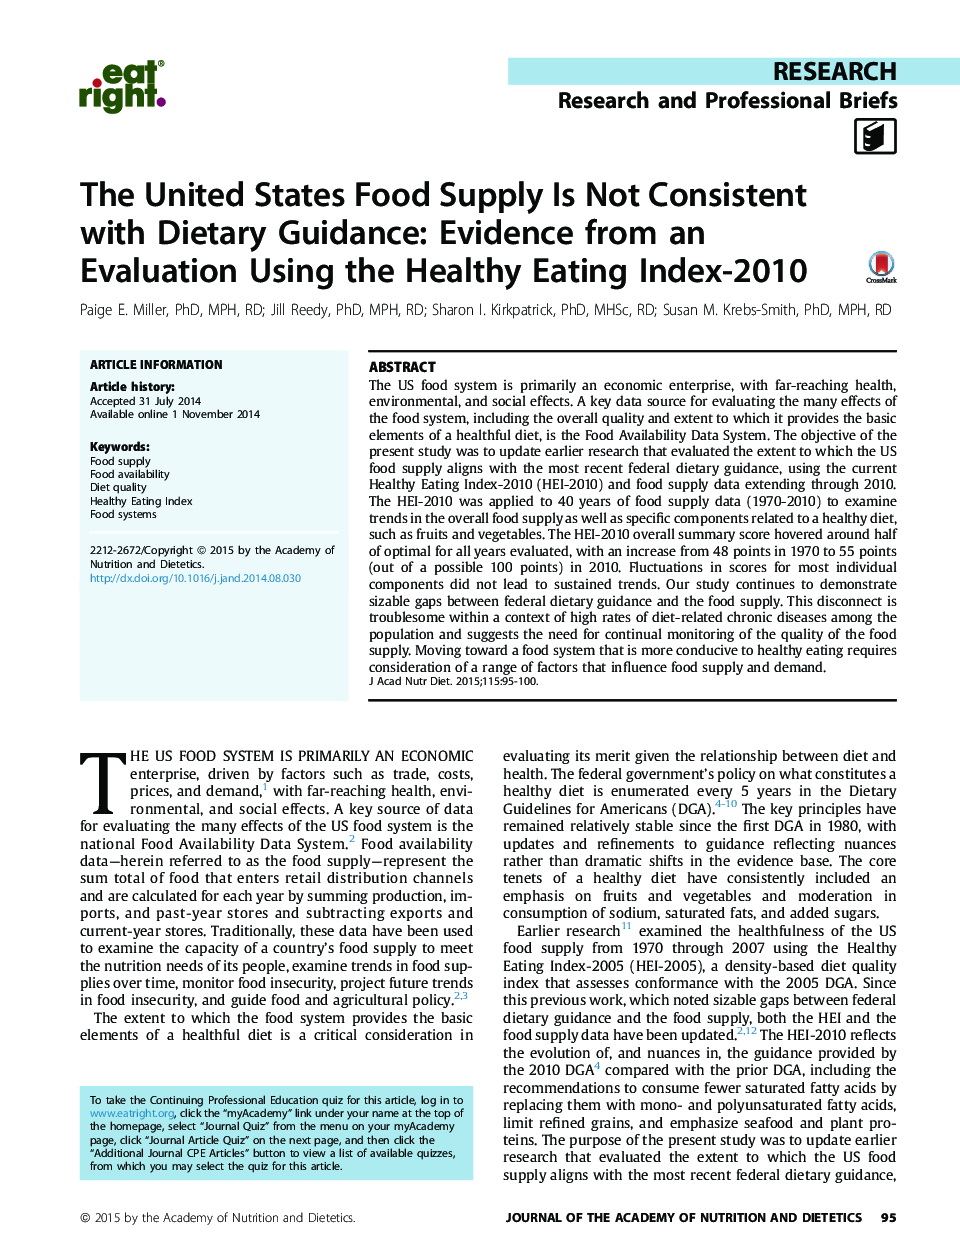 The United States Food Supply Is Not Consistent with Dietary